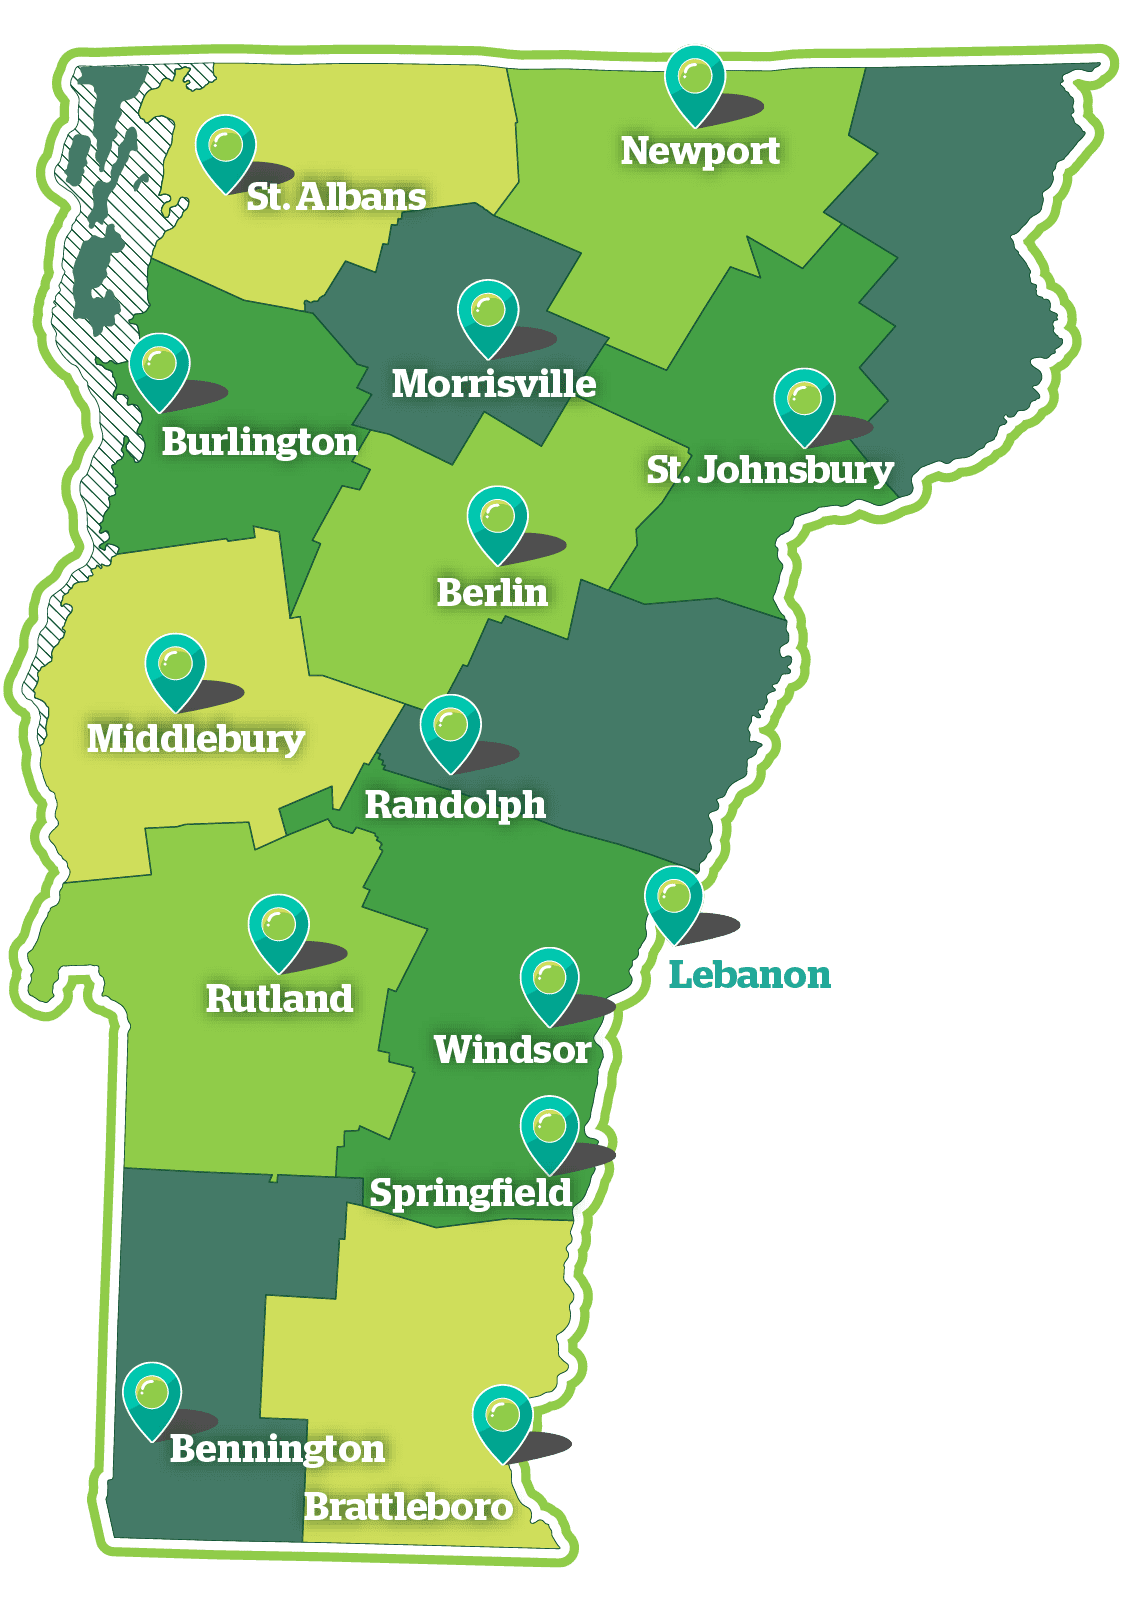 A map of Vermont that shows the boundaries of the health service areas in the state, and the locations - marked with pins - of the hospitals that participate in OneCare.